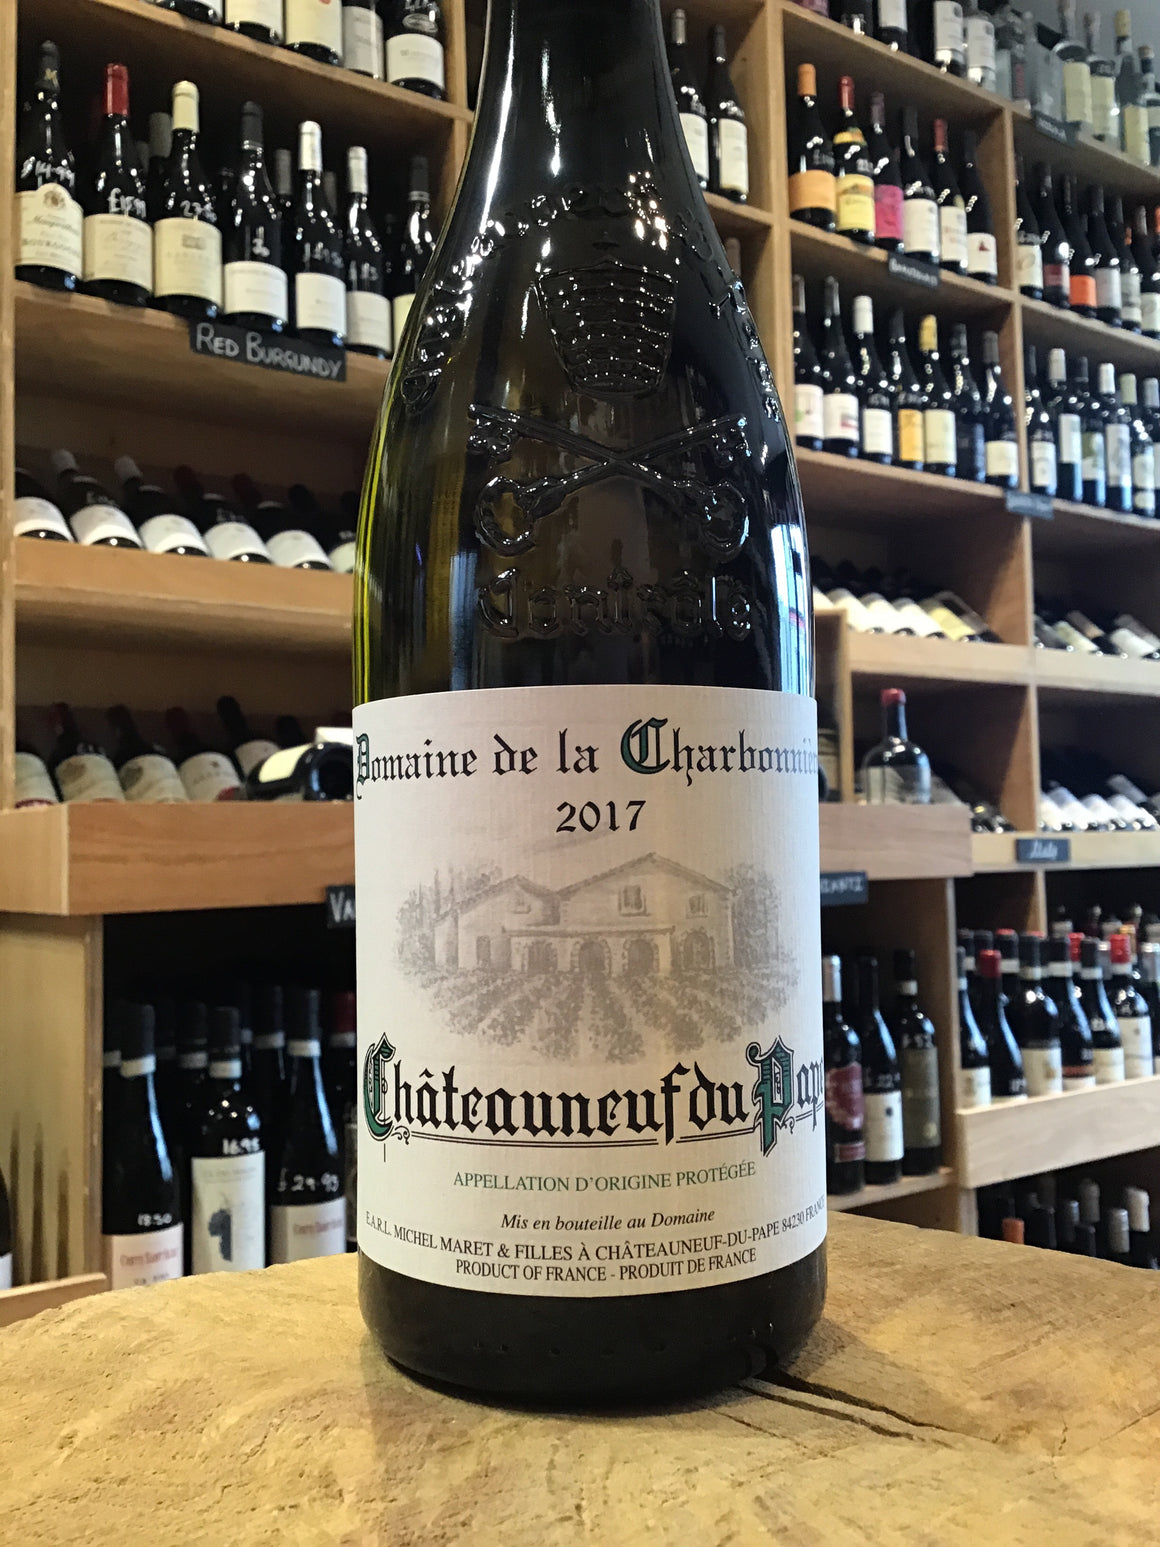 Chateauneuf du Pape Blanc, Domaine Charbonniere 2017 - Butlers Wine Cellar Brighton